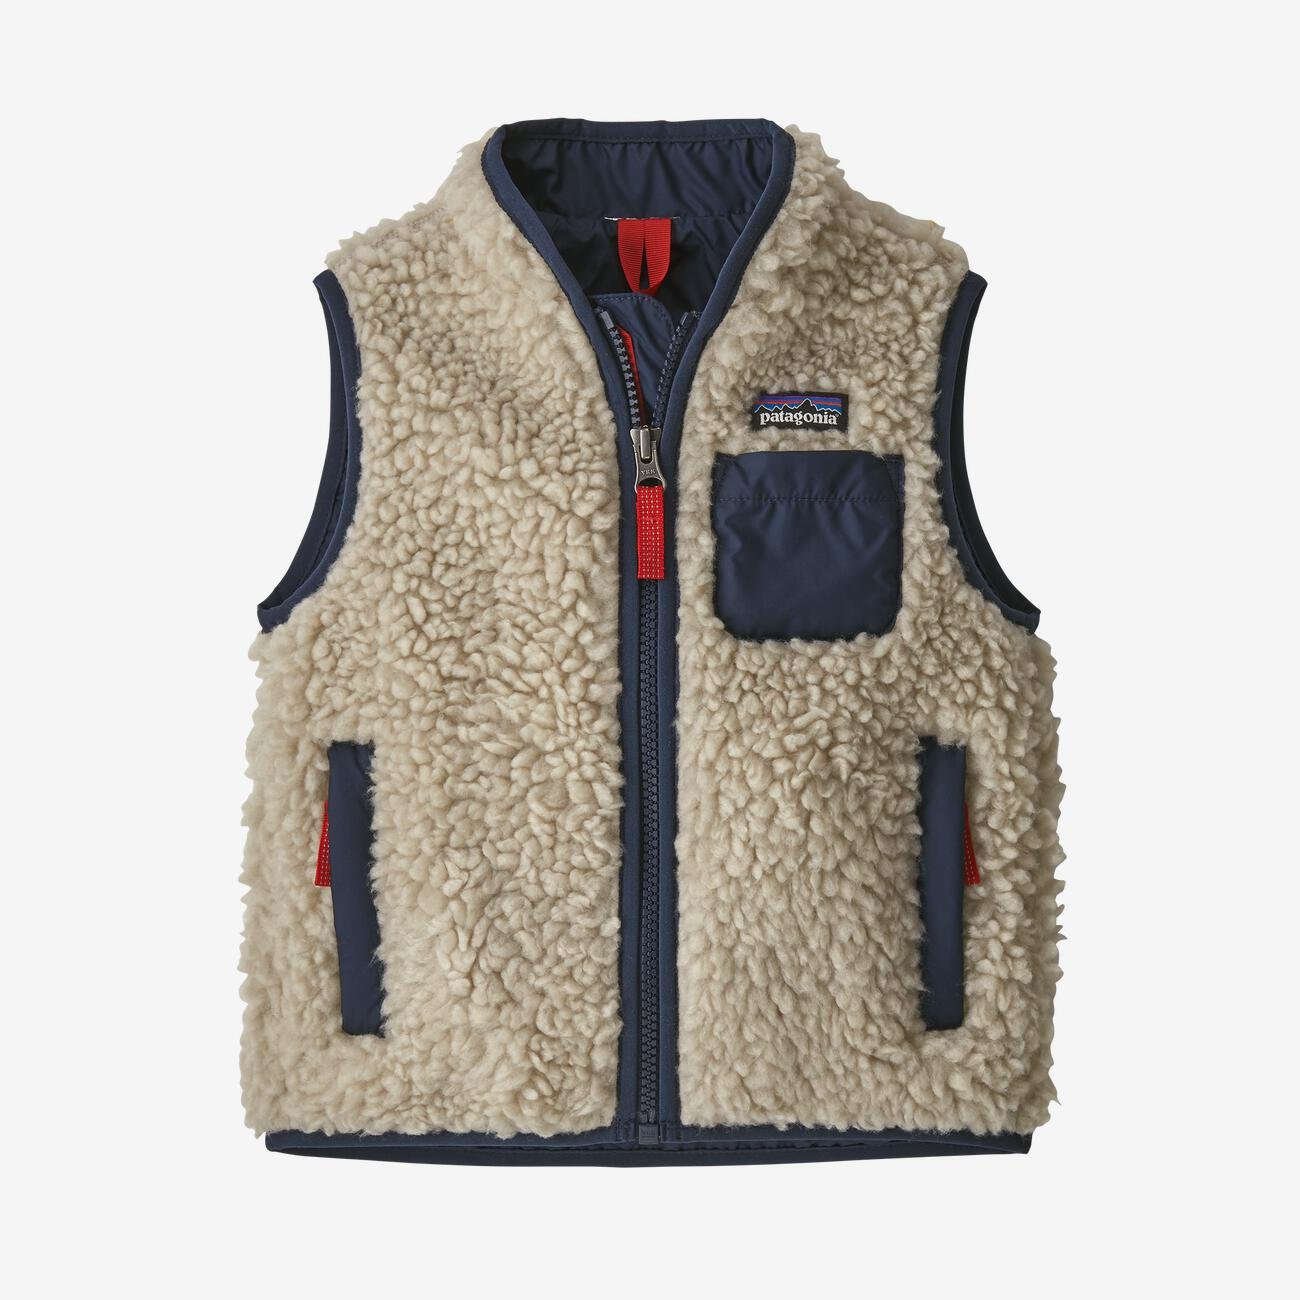 Patagonia Baby Retro-X Vest in Natural/Navy